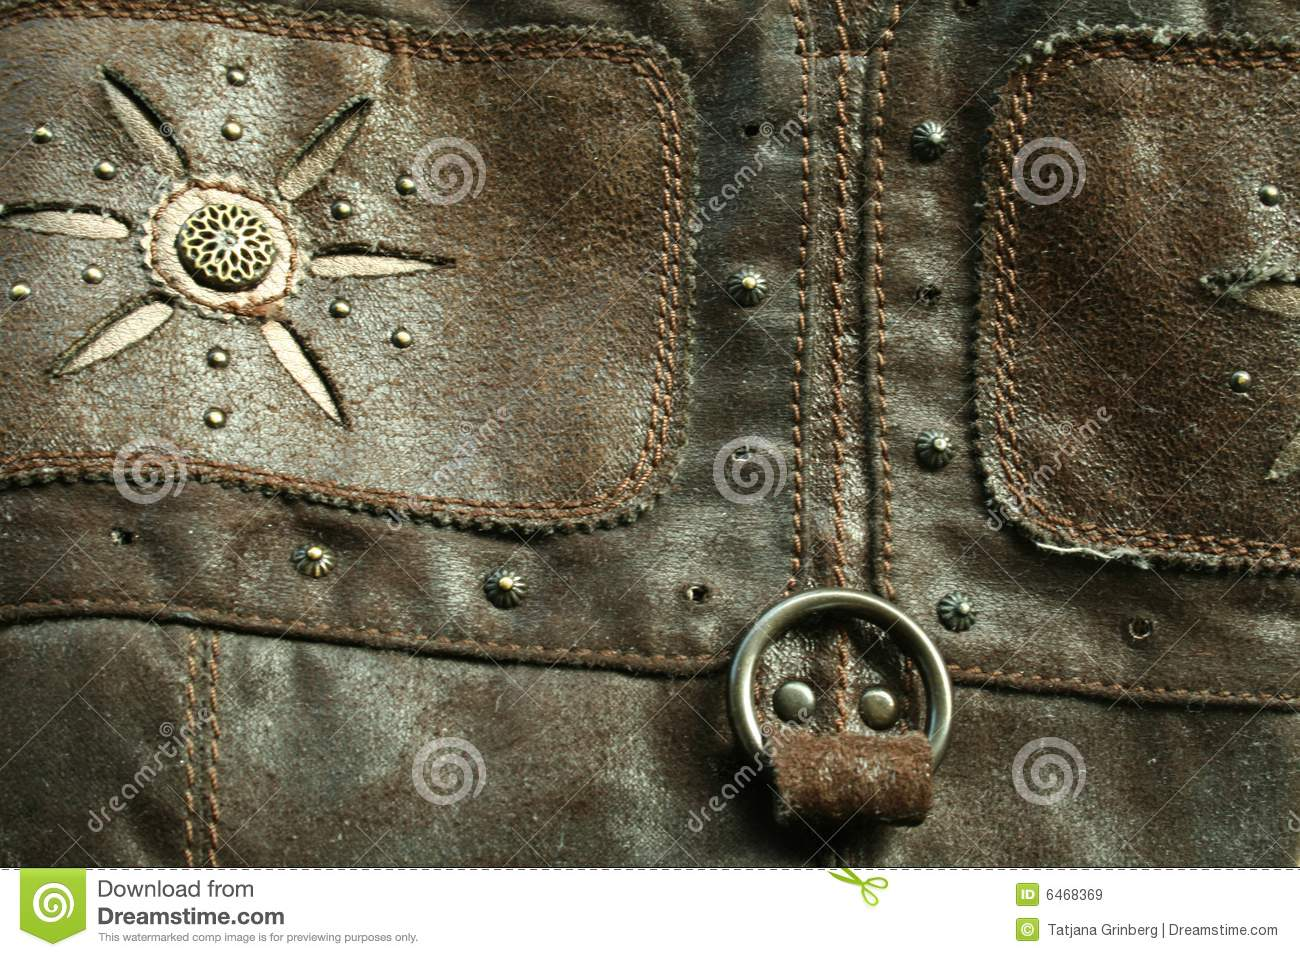 The old leather with the metallic rivets